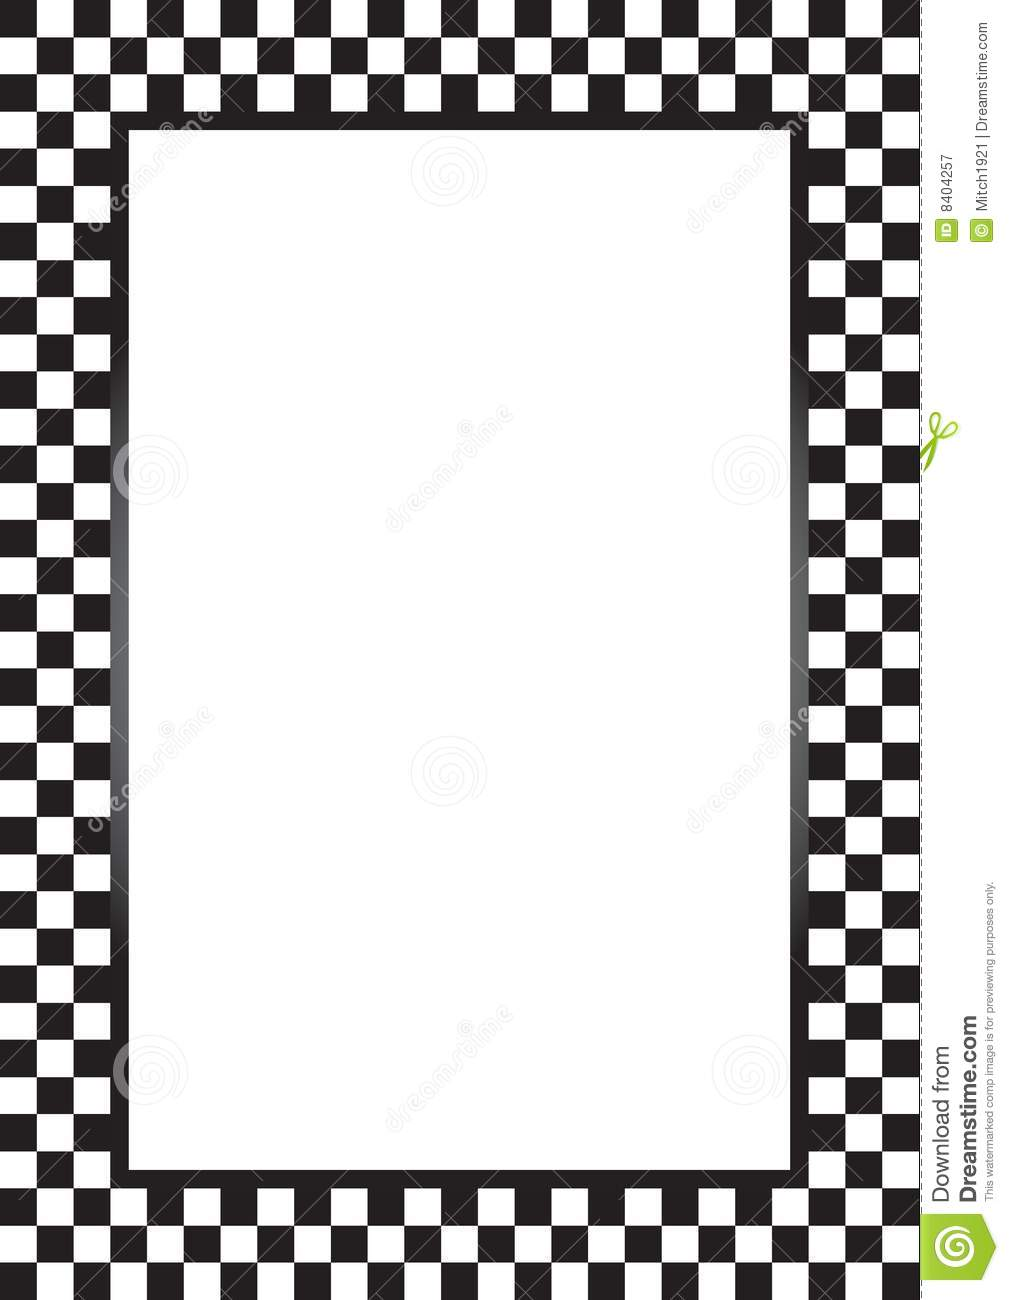 Free Checkered Border Cliparts, Download Free Clip Art